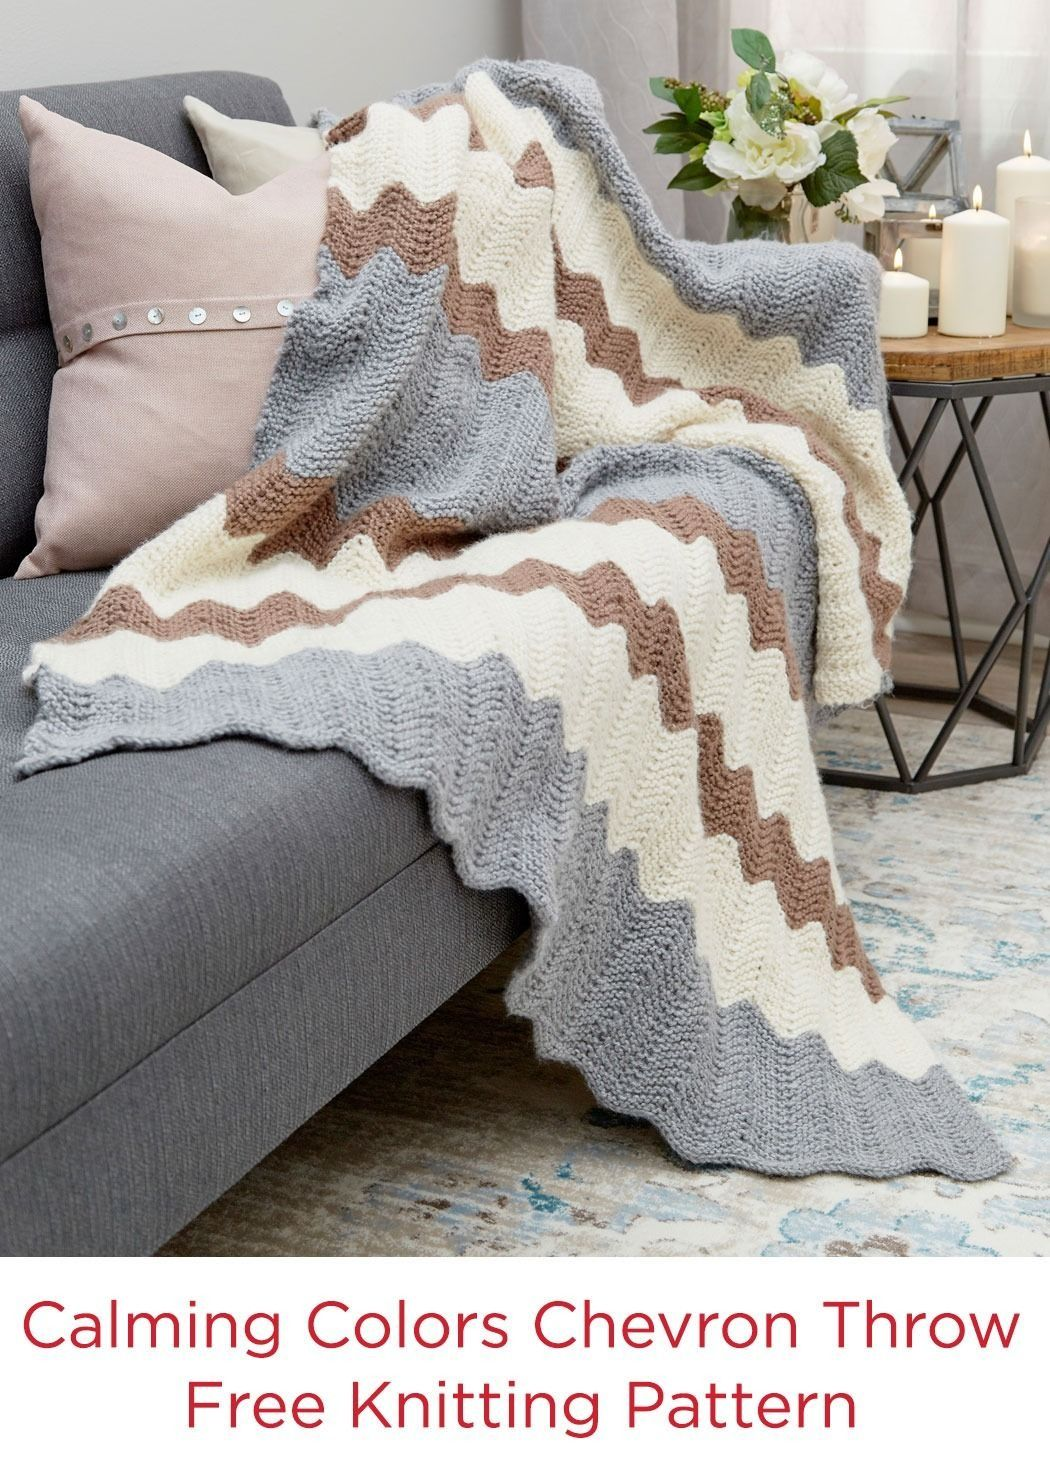 Calming Colors Chevron Throw Free Knit Pattern Red Heart Yarns in